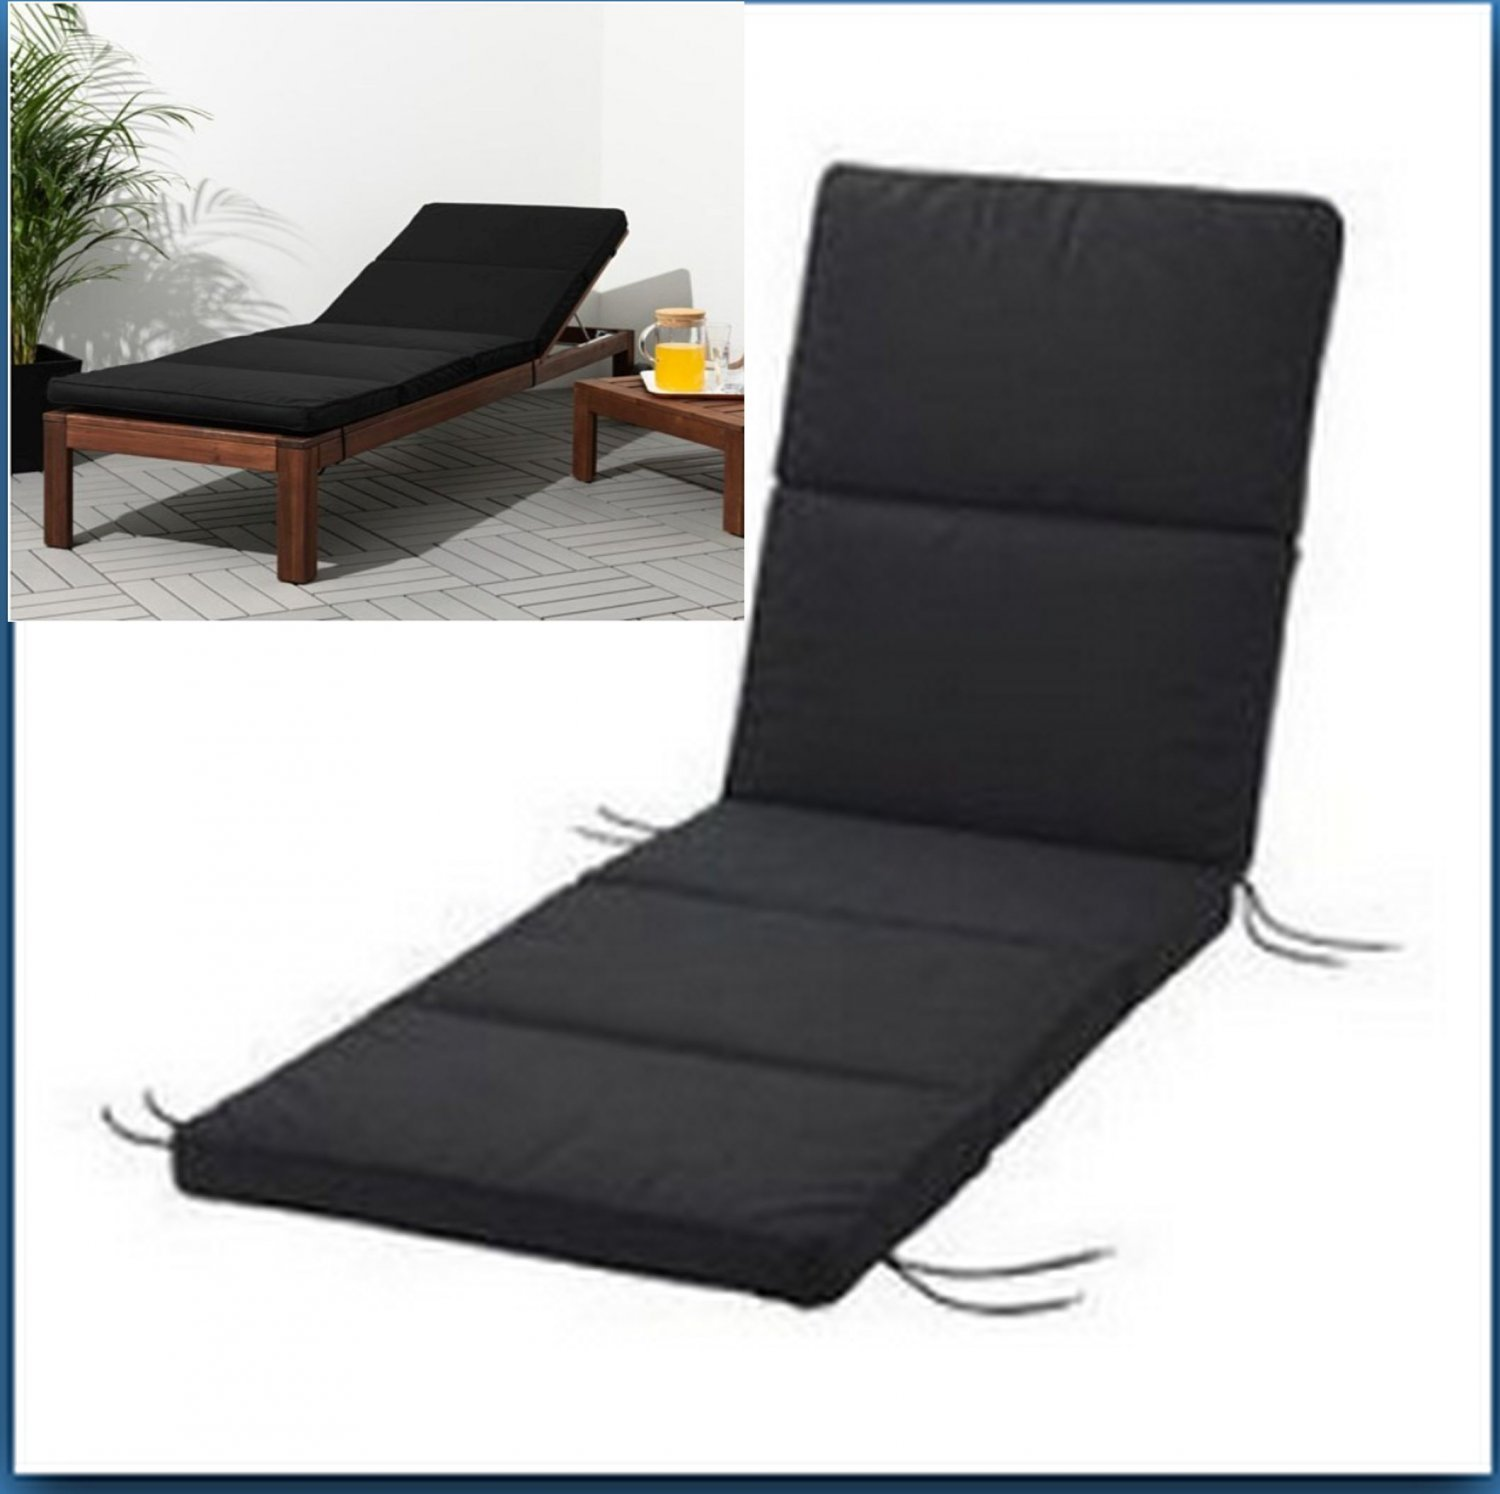 IKEA Kunsjo Indoor Outdoor Chaise CUSHION Black Patio Deck Lounge Pad KUNGS� Sale ends Feb. 17